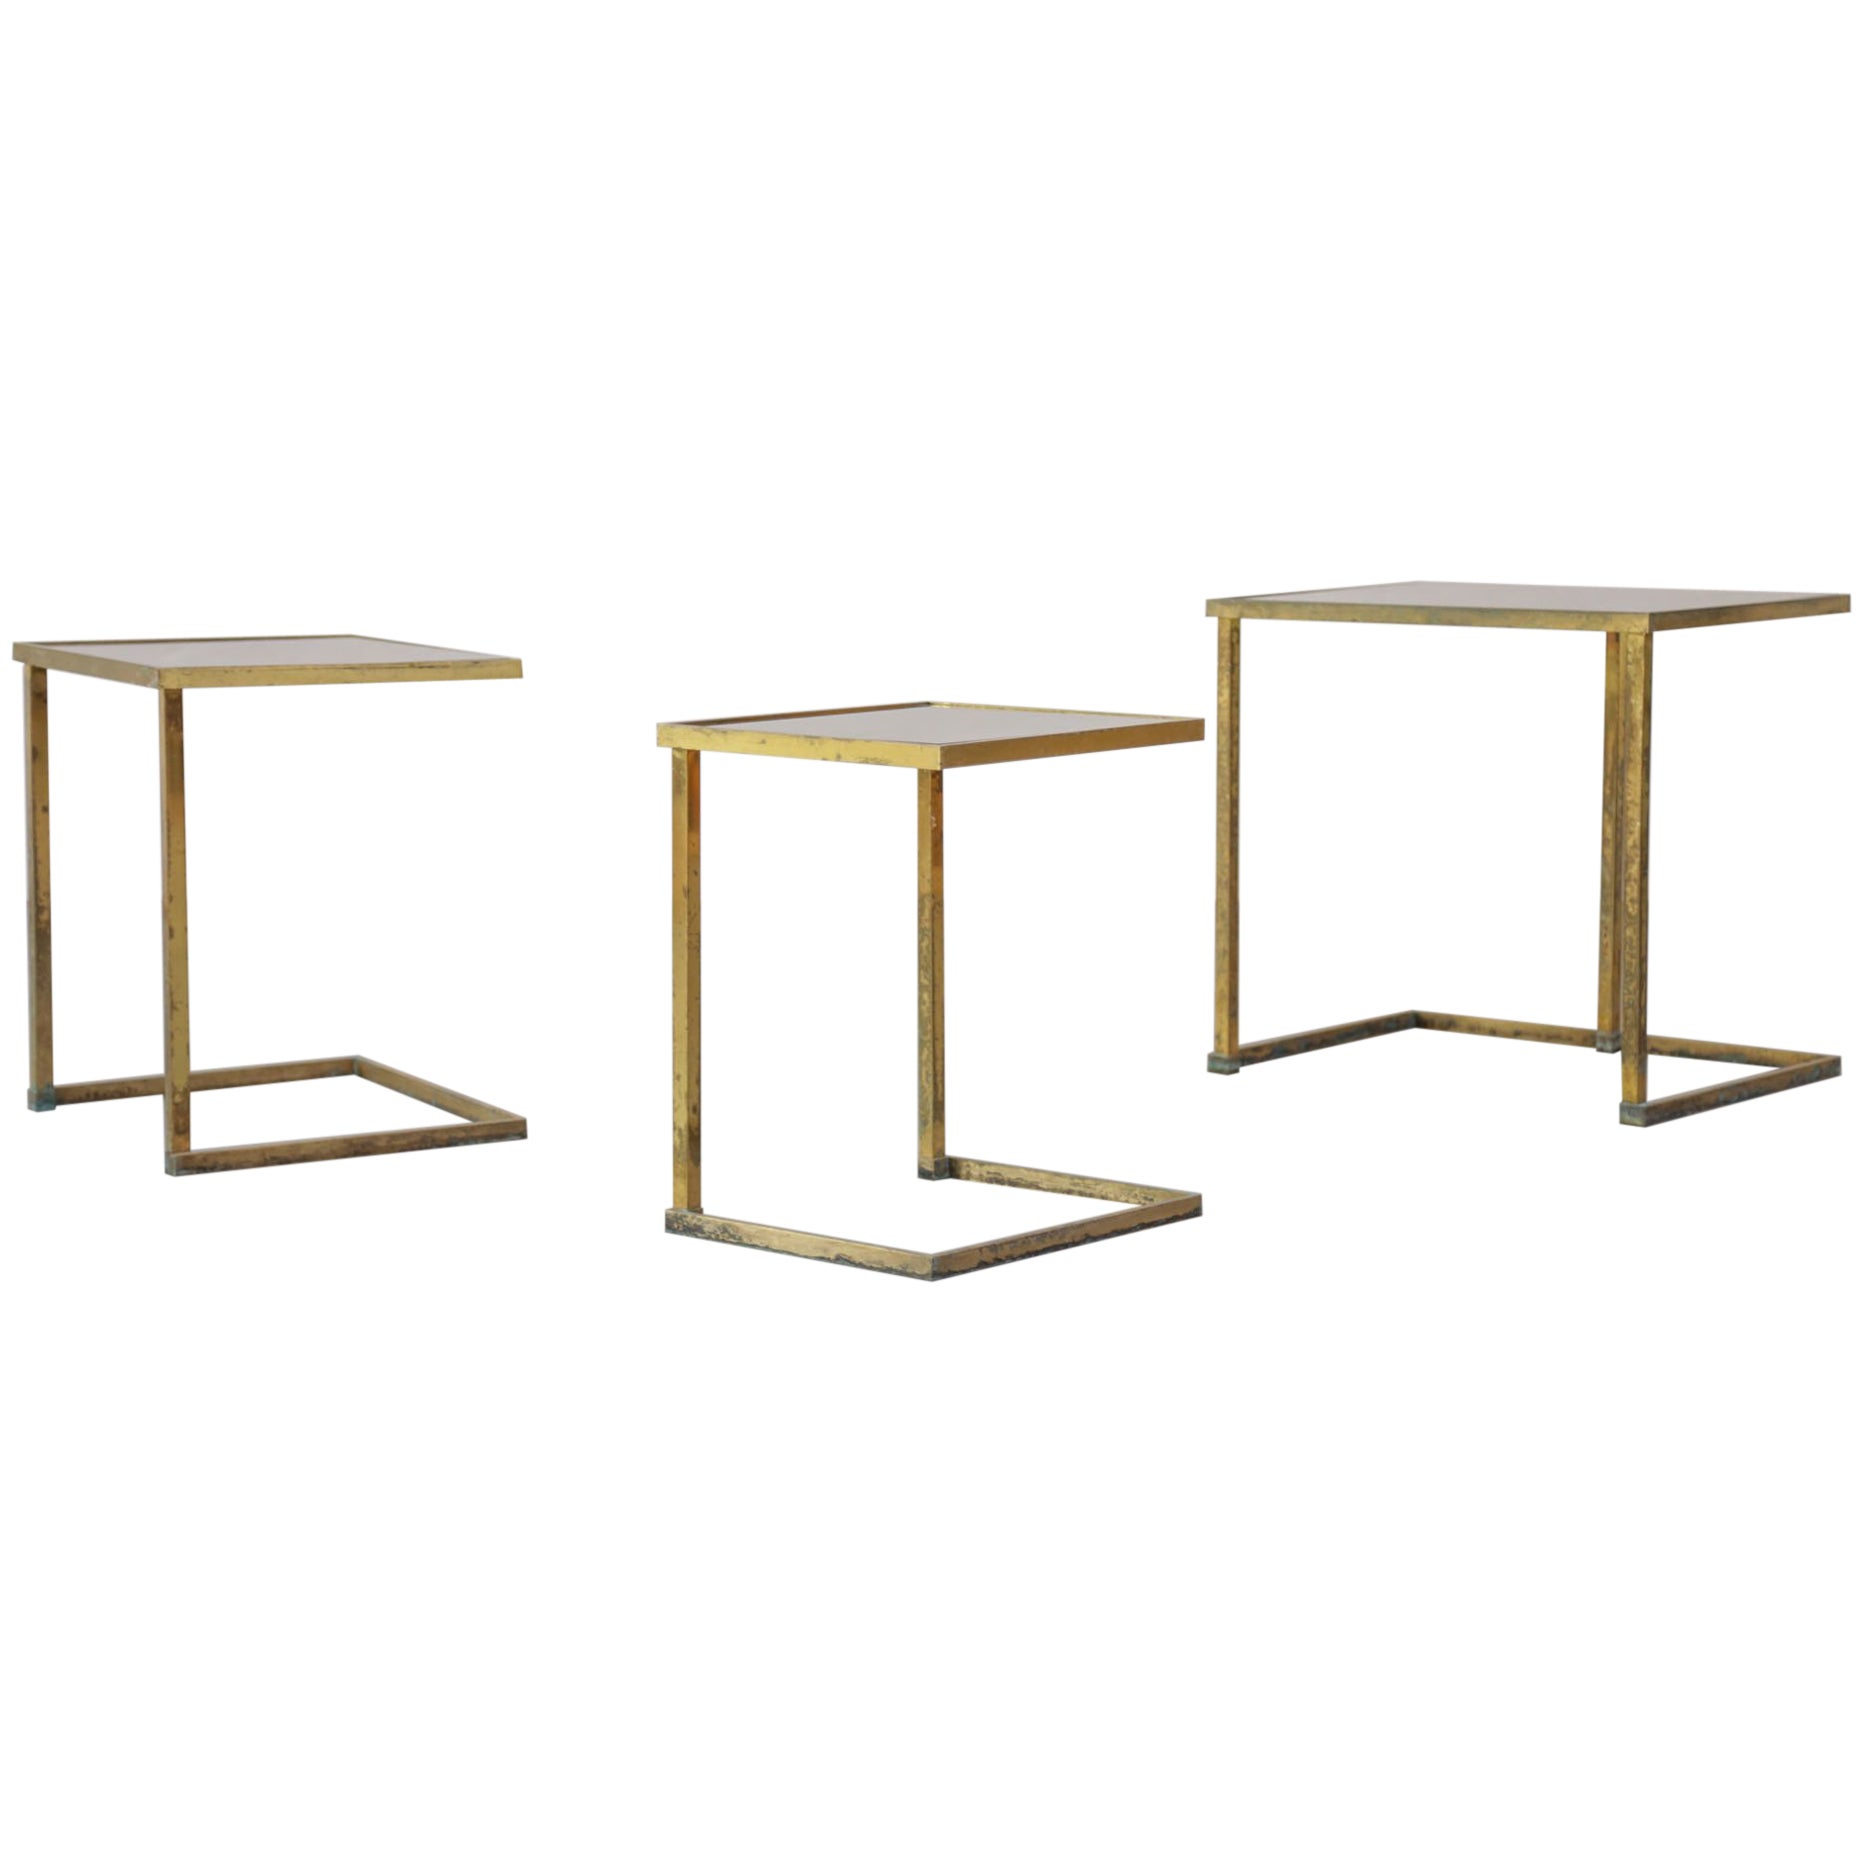 Nesting Brass Tables 1960s with Mirror on Top